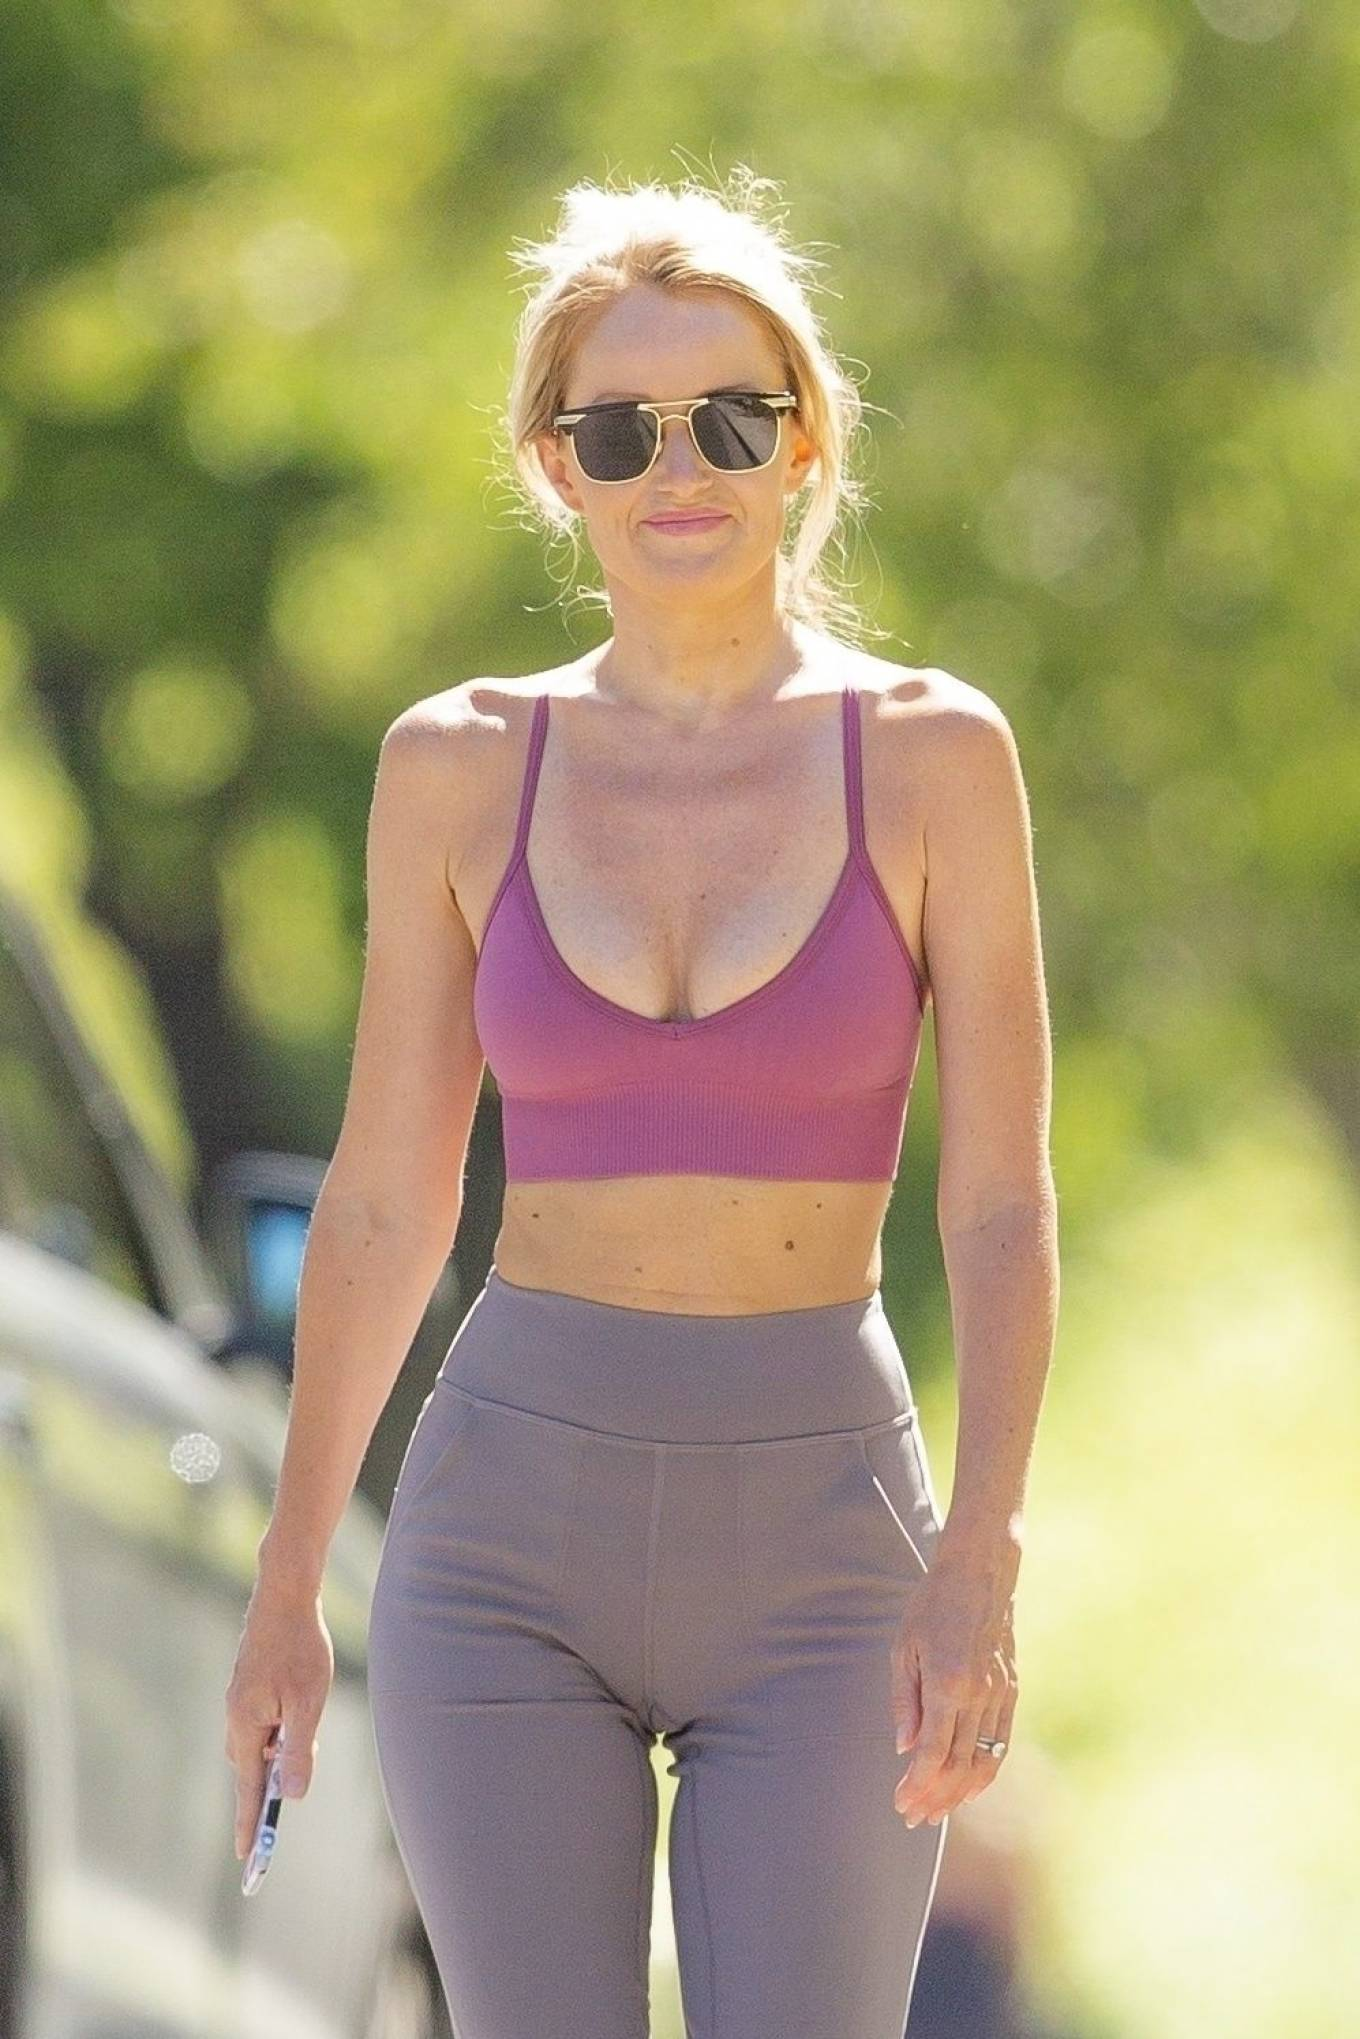 Hayley Roberts Hasselhoff 2020 : Hayley Roberts Hasselhoff in Tights and Sports Bra – Out in Calabasas-17